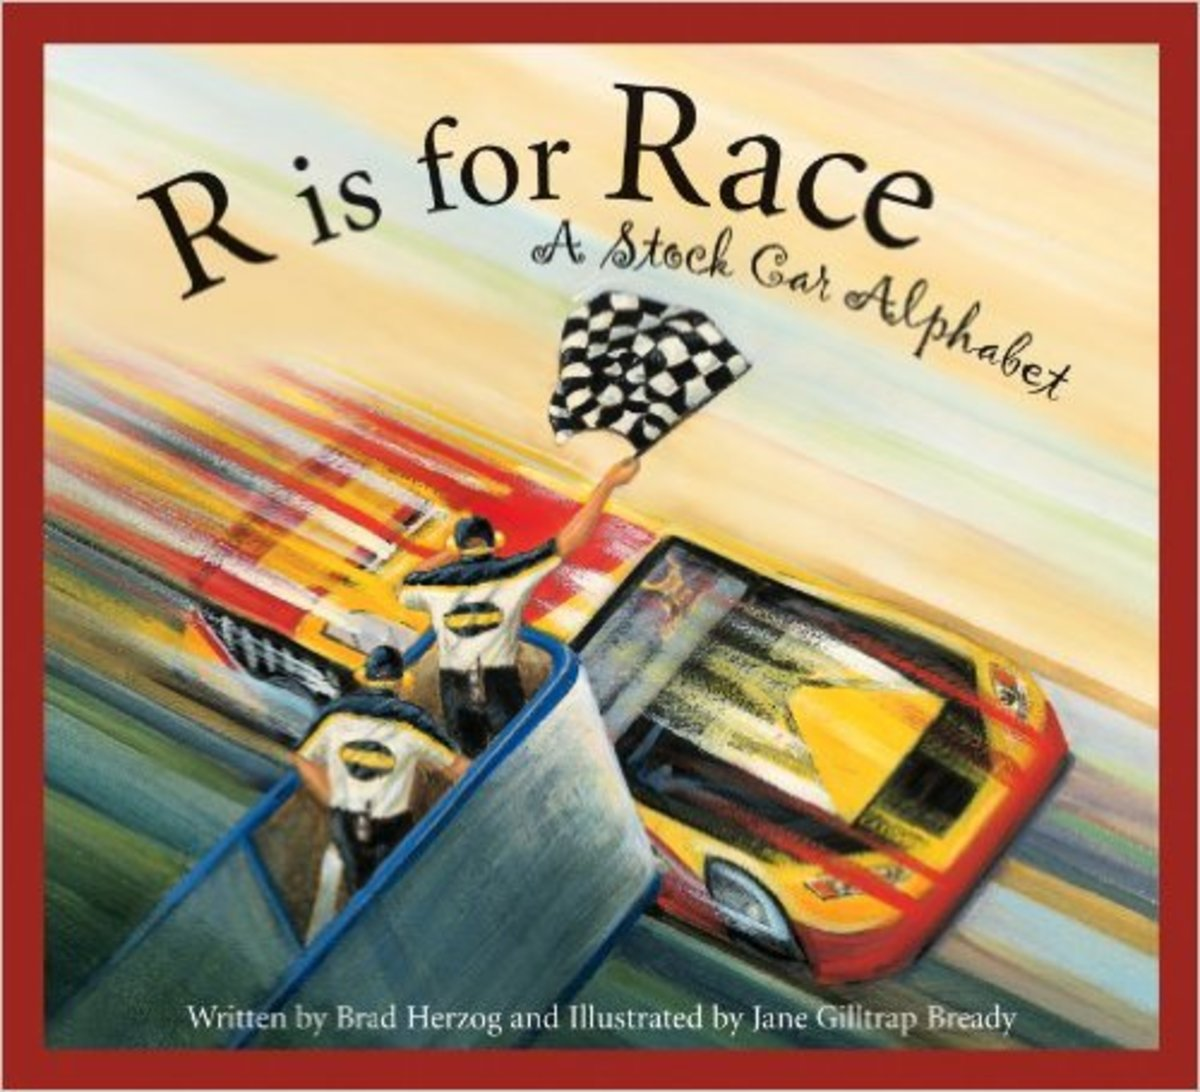 R is for Race: A Stock Car Alphabet (Sports Alphabet) by Brad Herzog